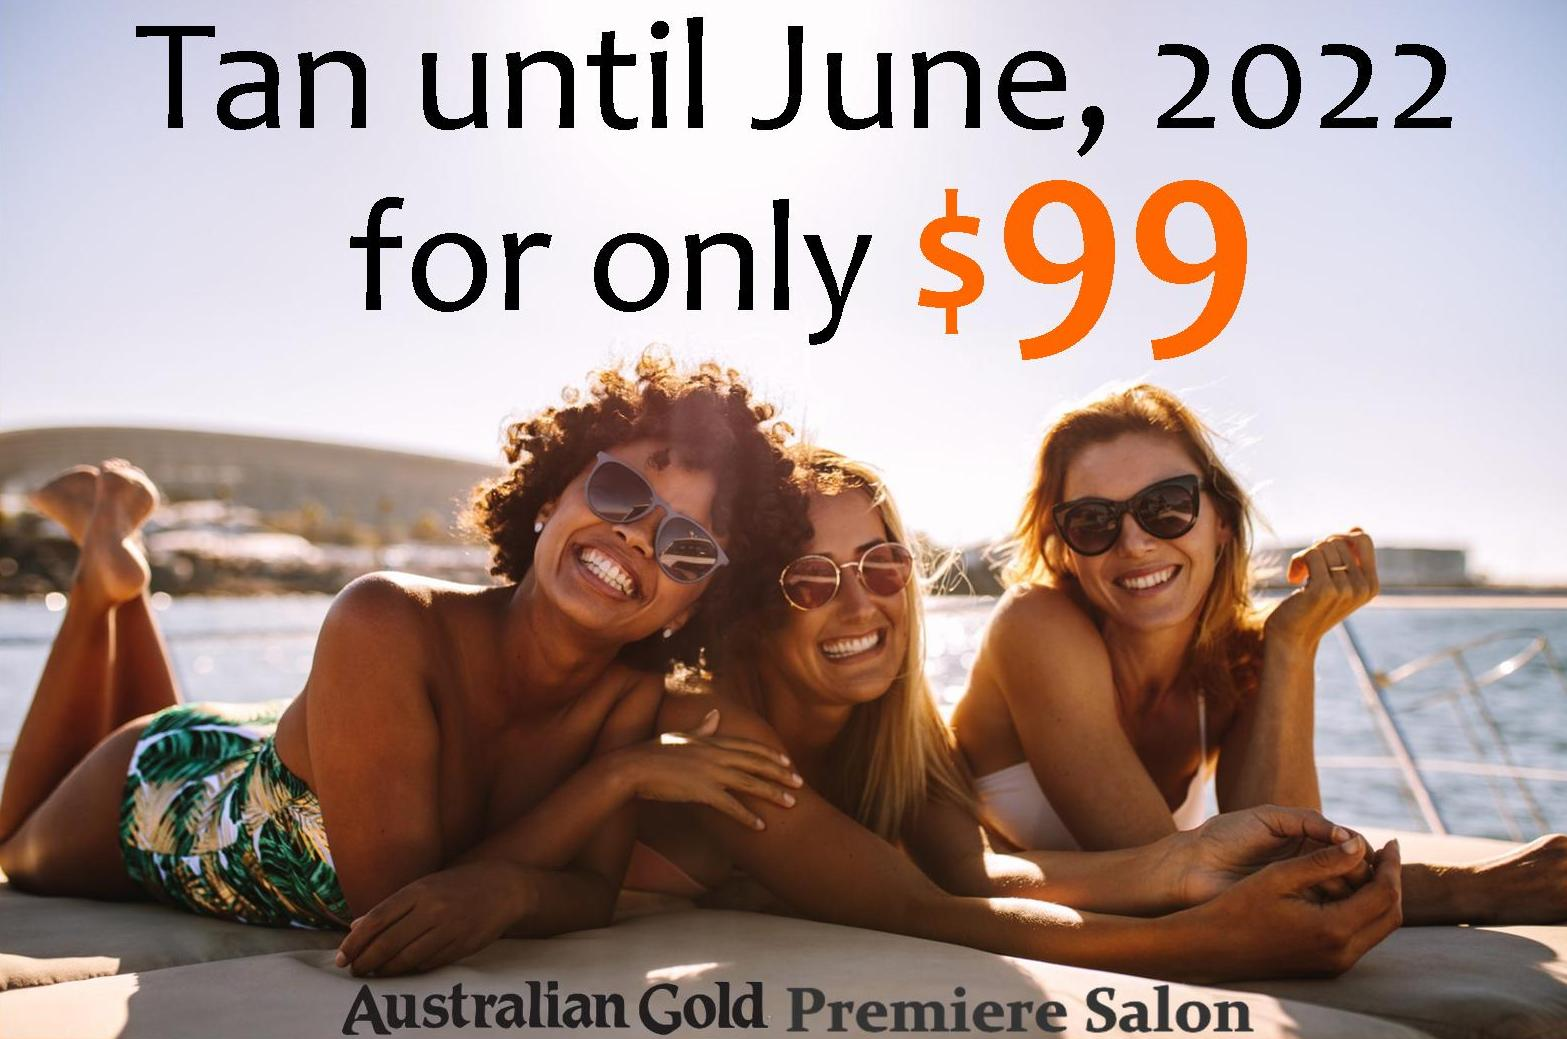 Tan until june 2022 for only $99